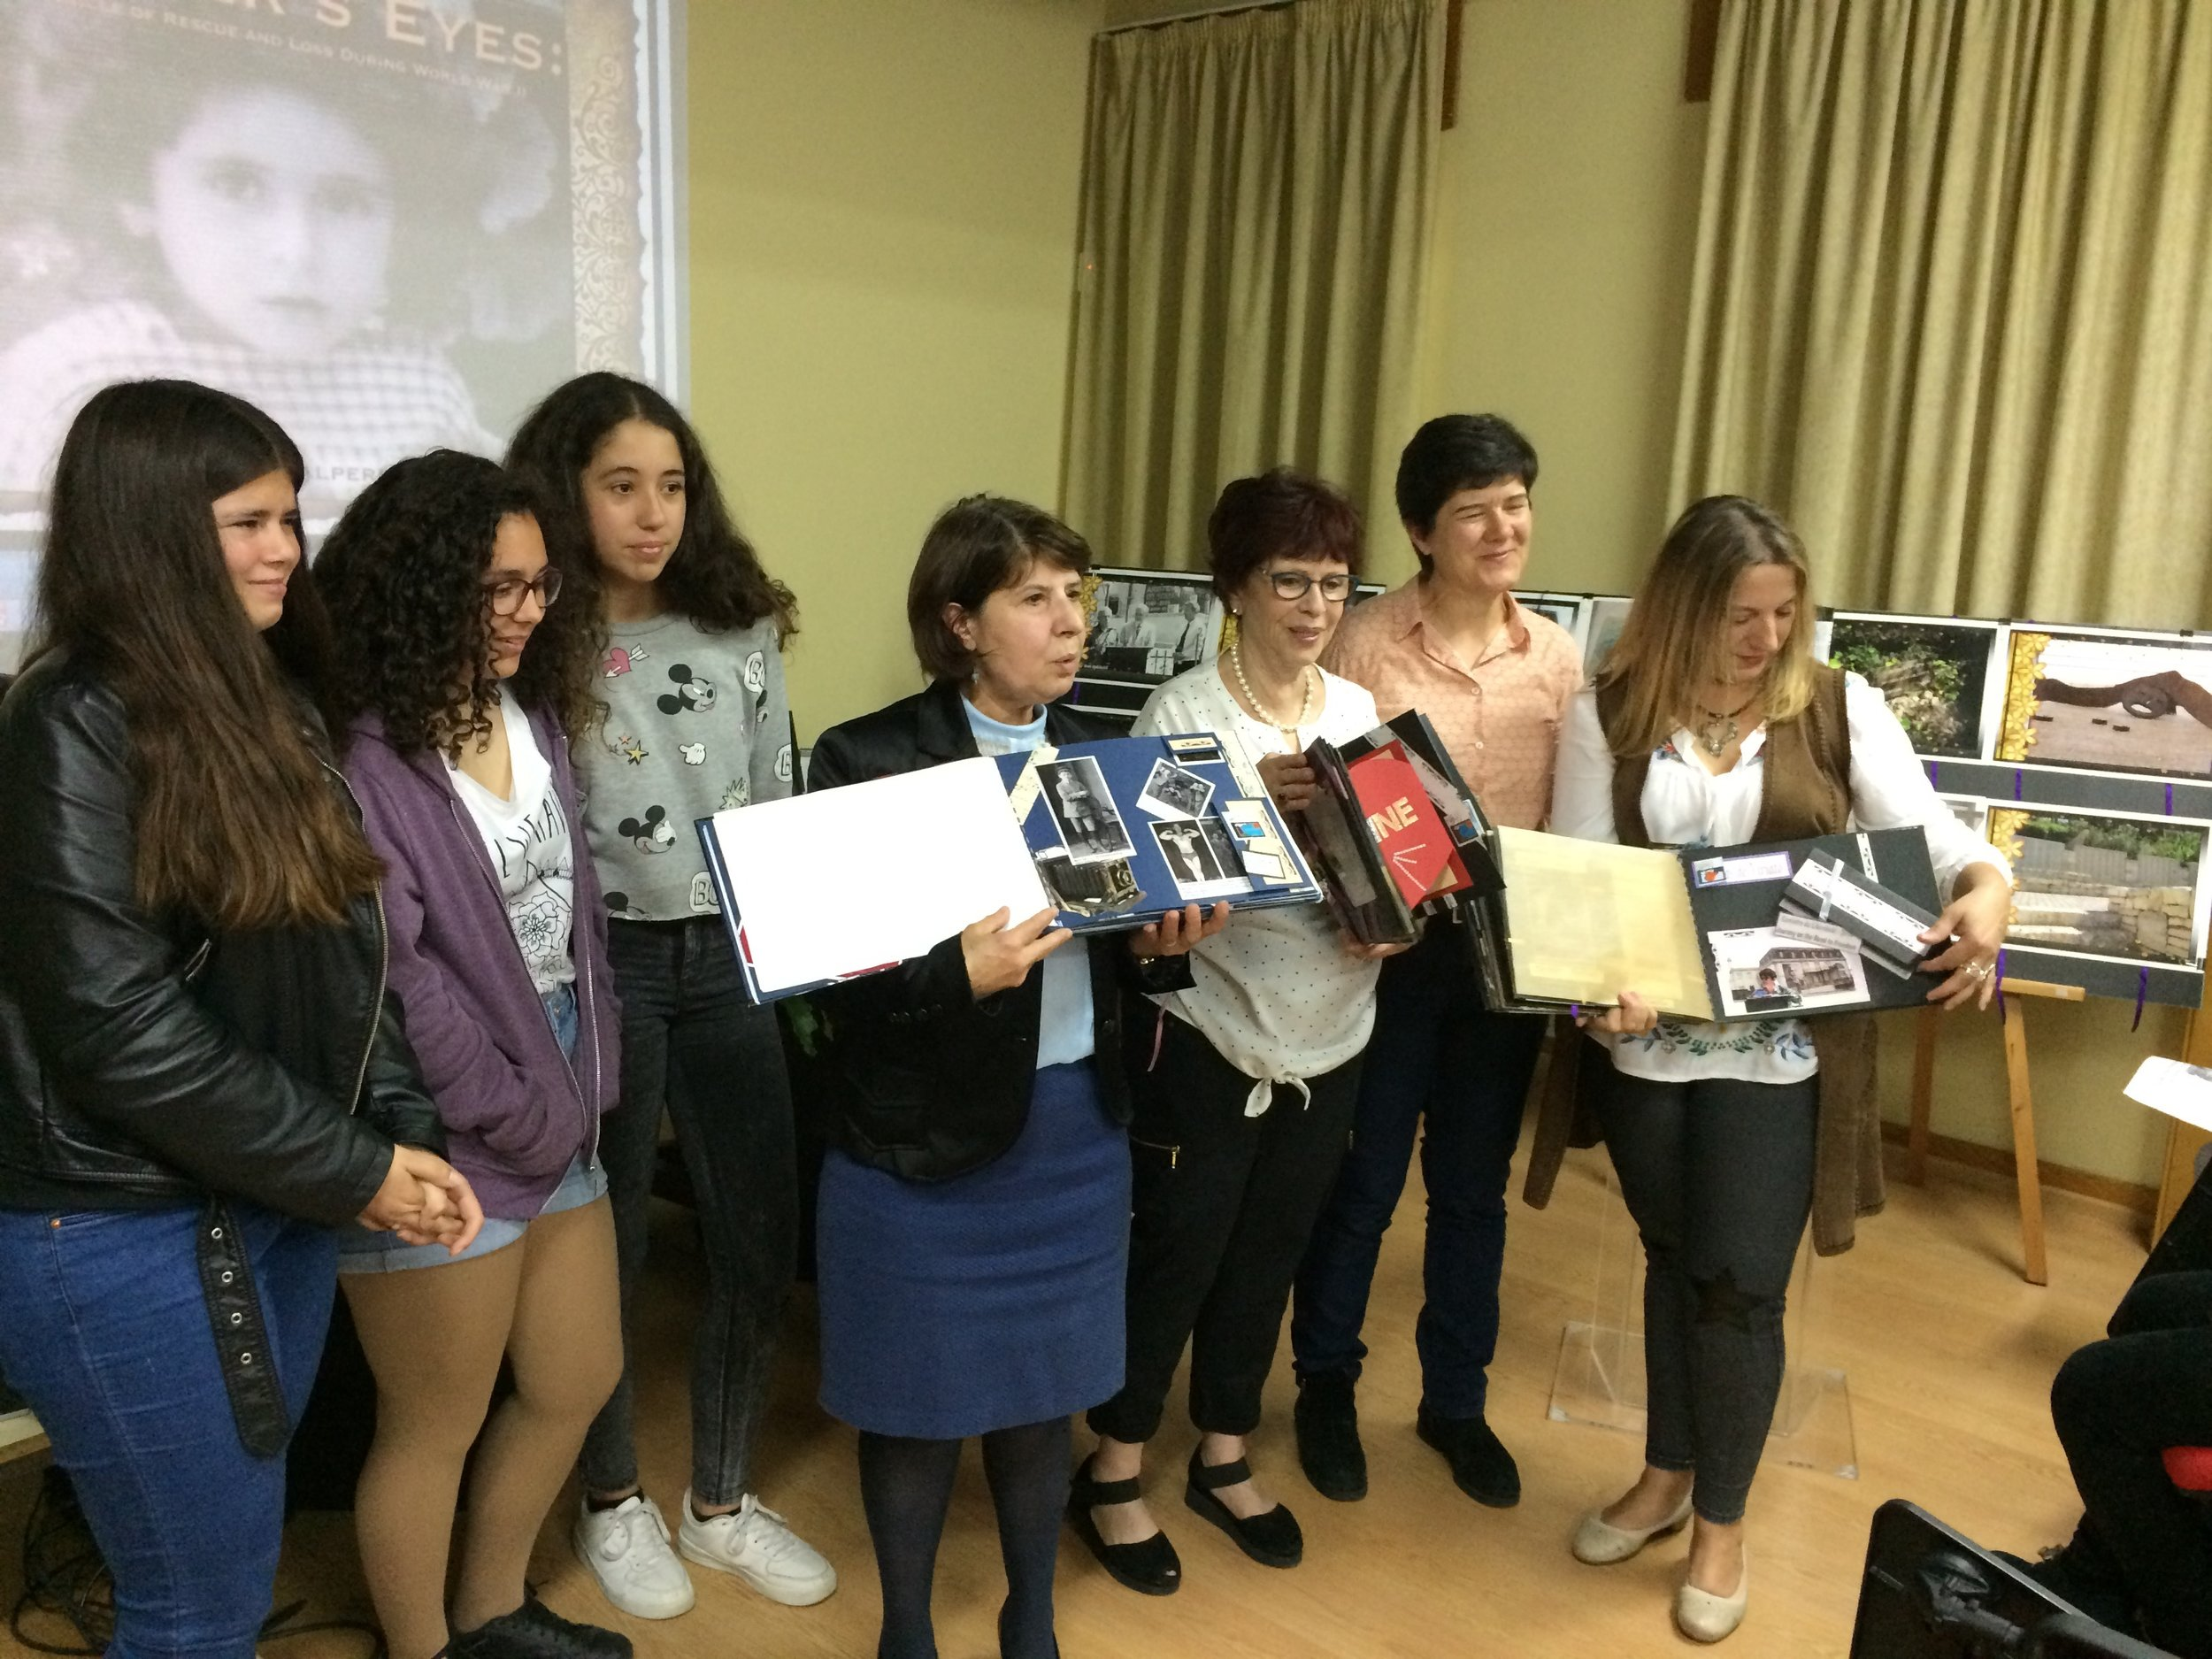 Joan with UNESCO teachers - Dores do Carmo, Lurdes Cruz and Josefa Reis - and student presenters.